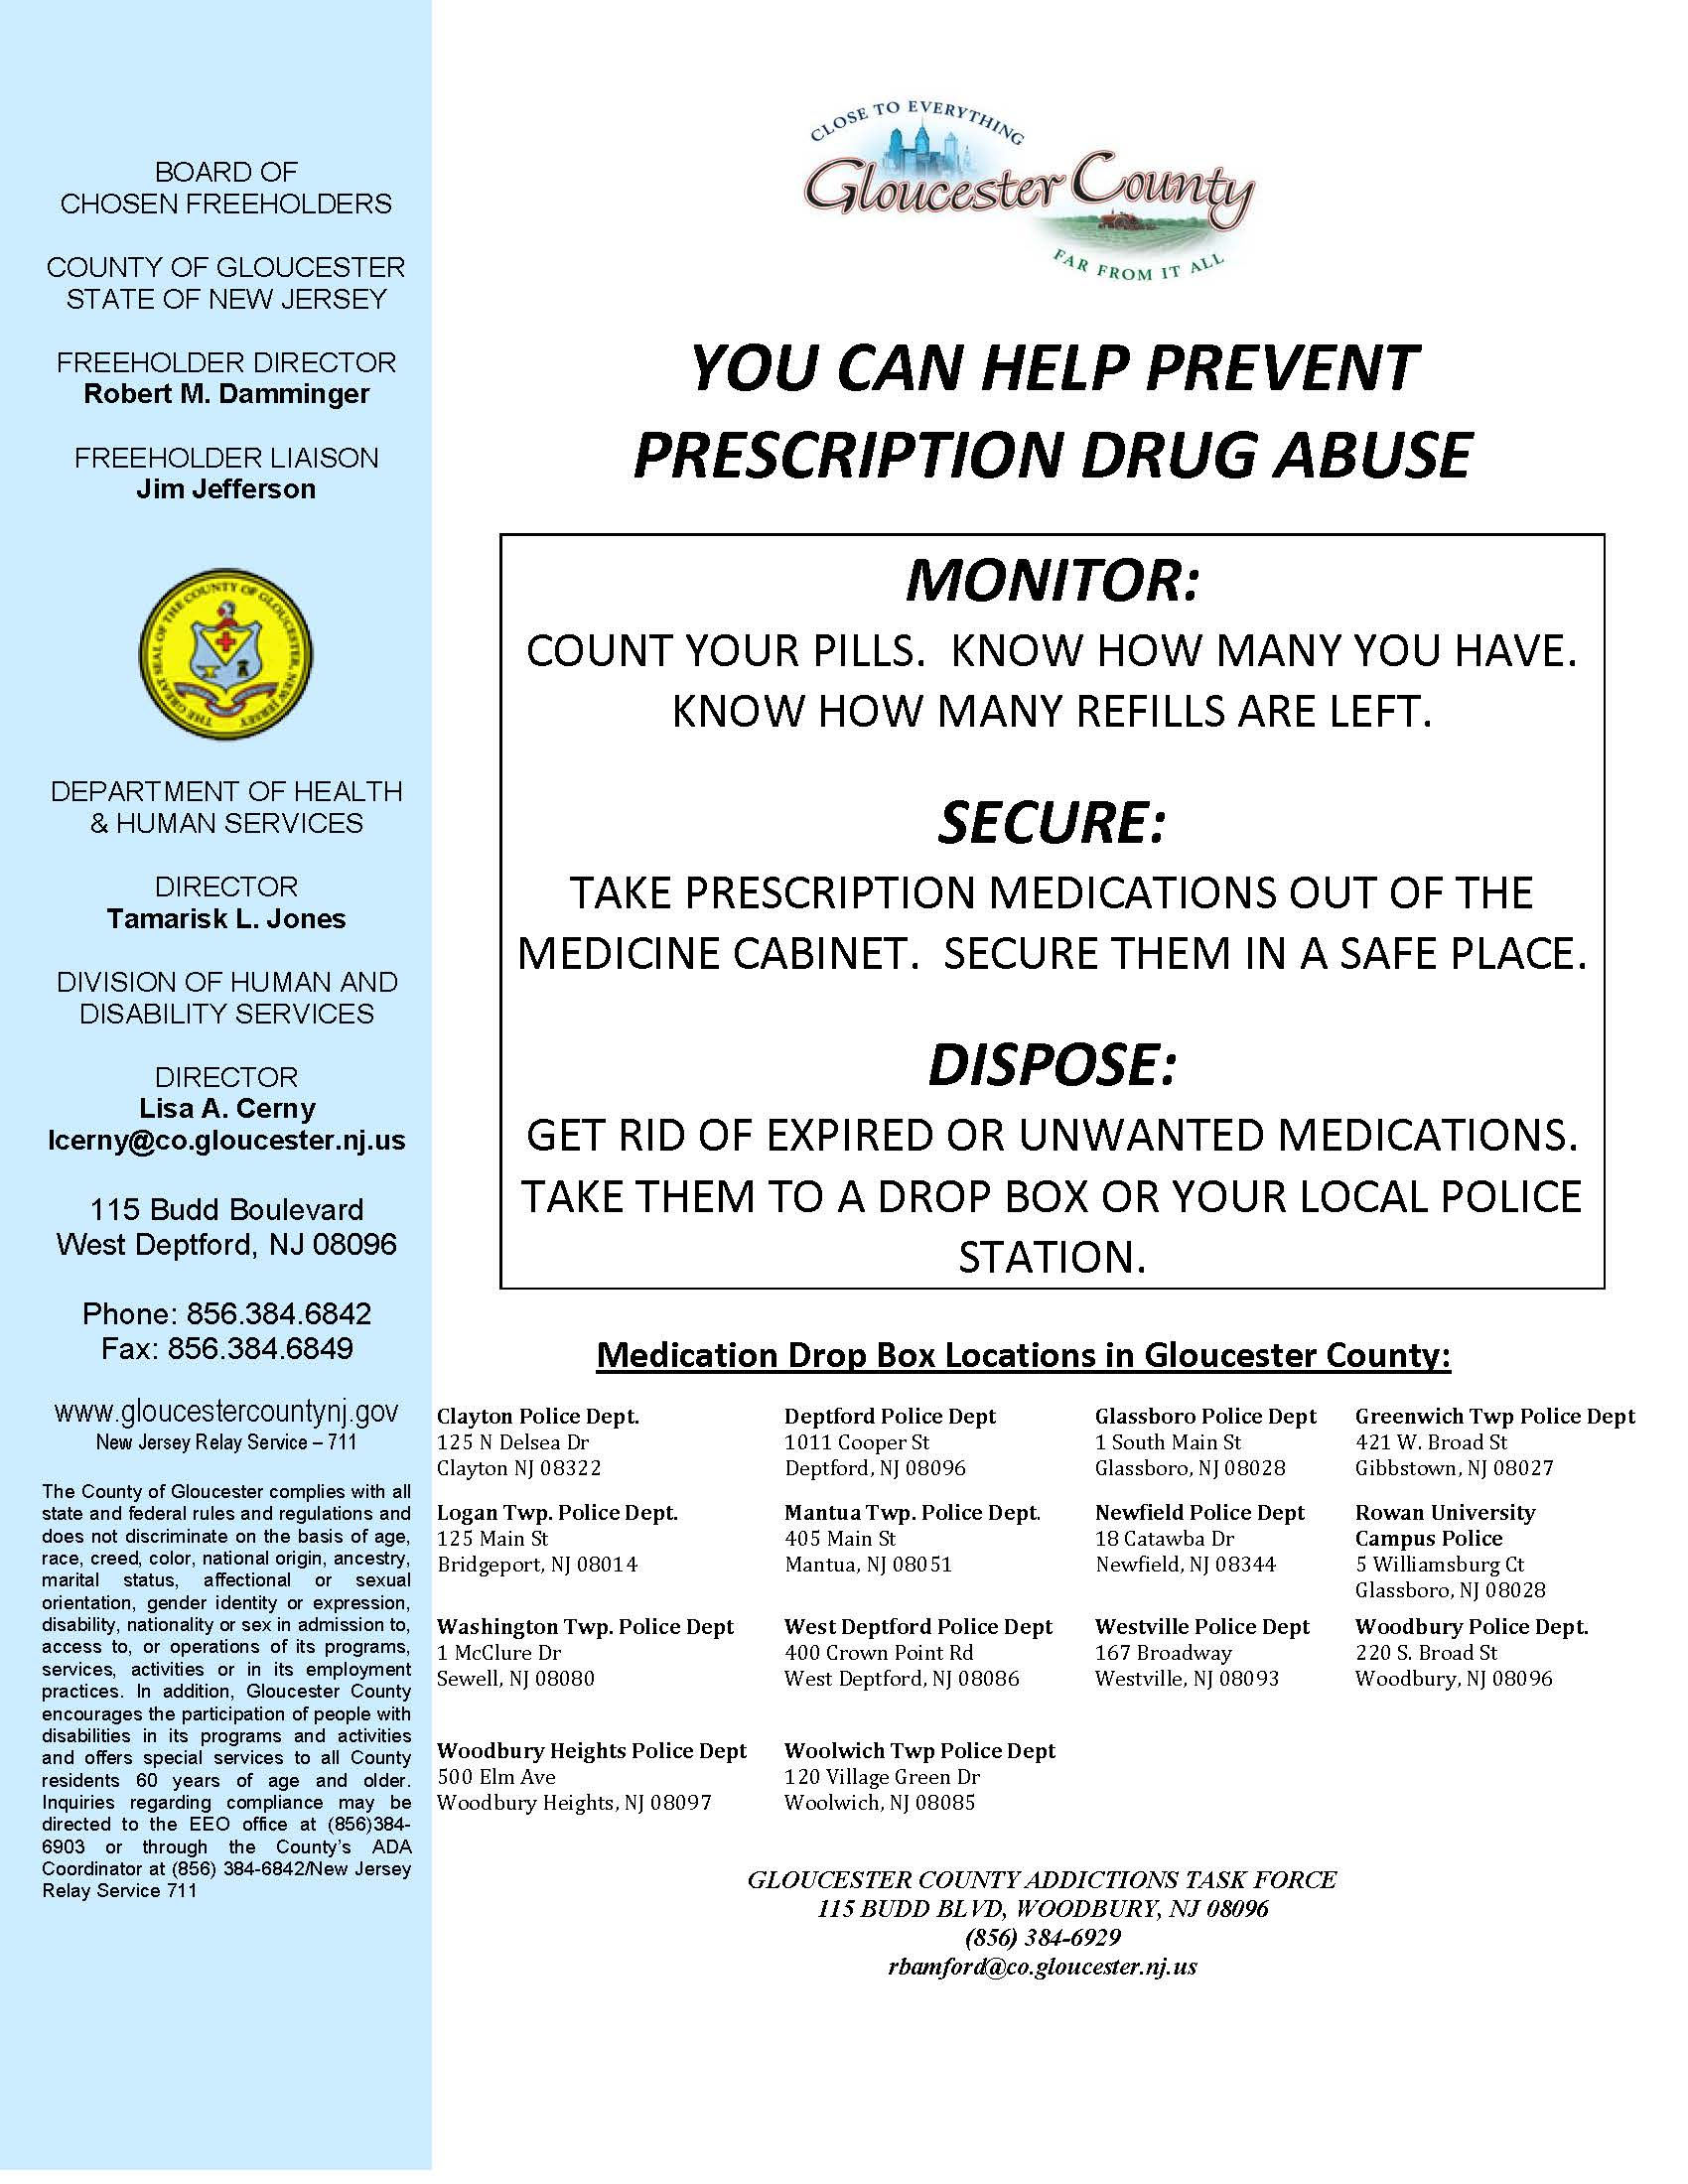 Med Disposal Flyer